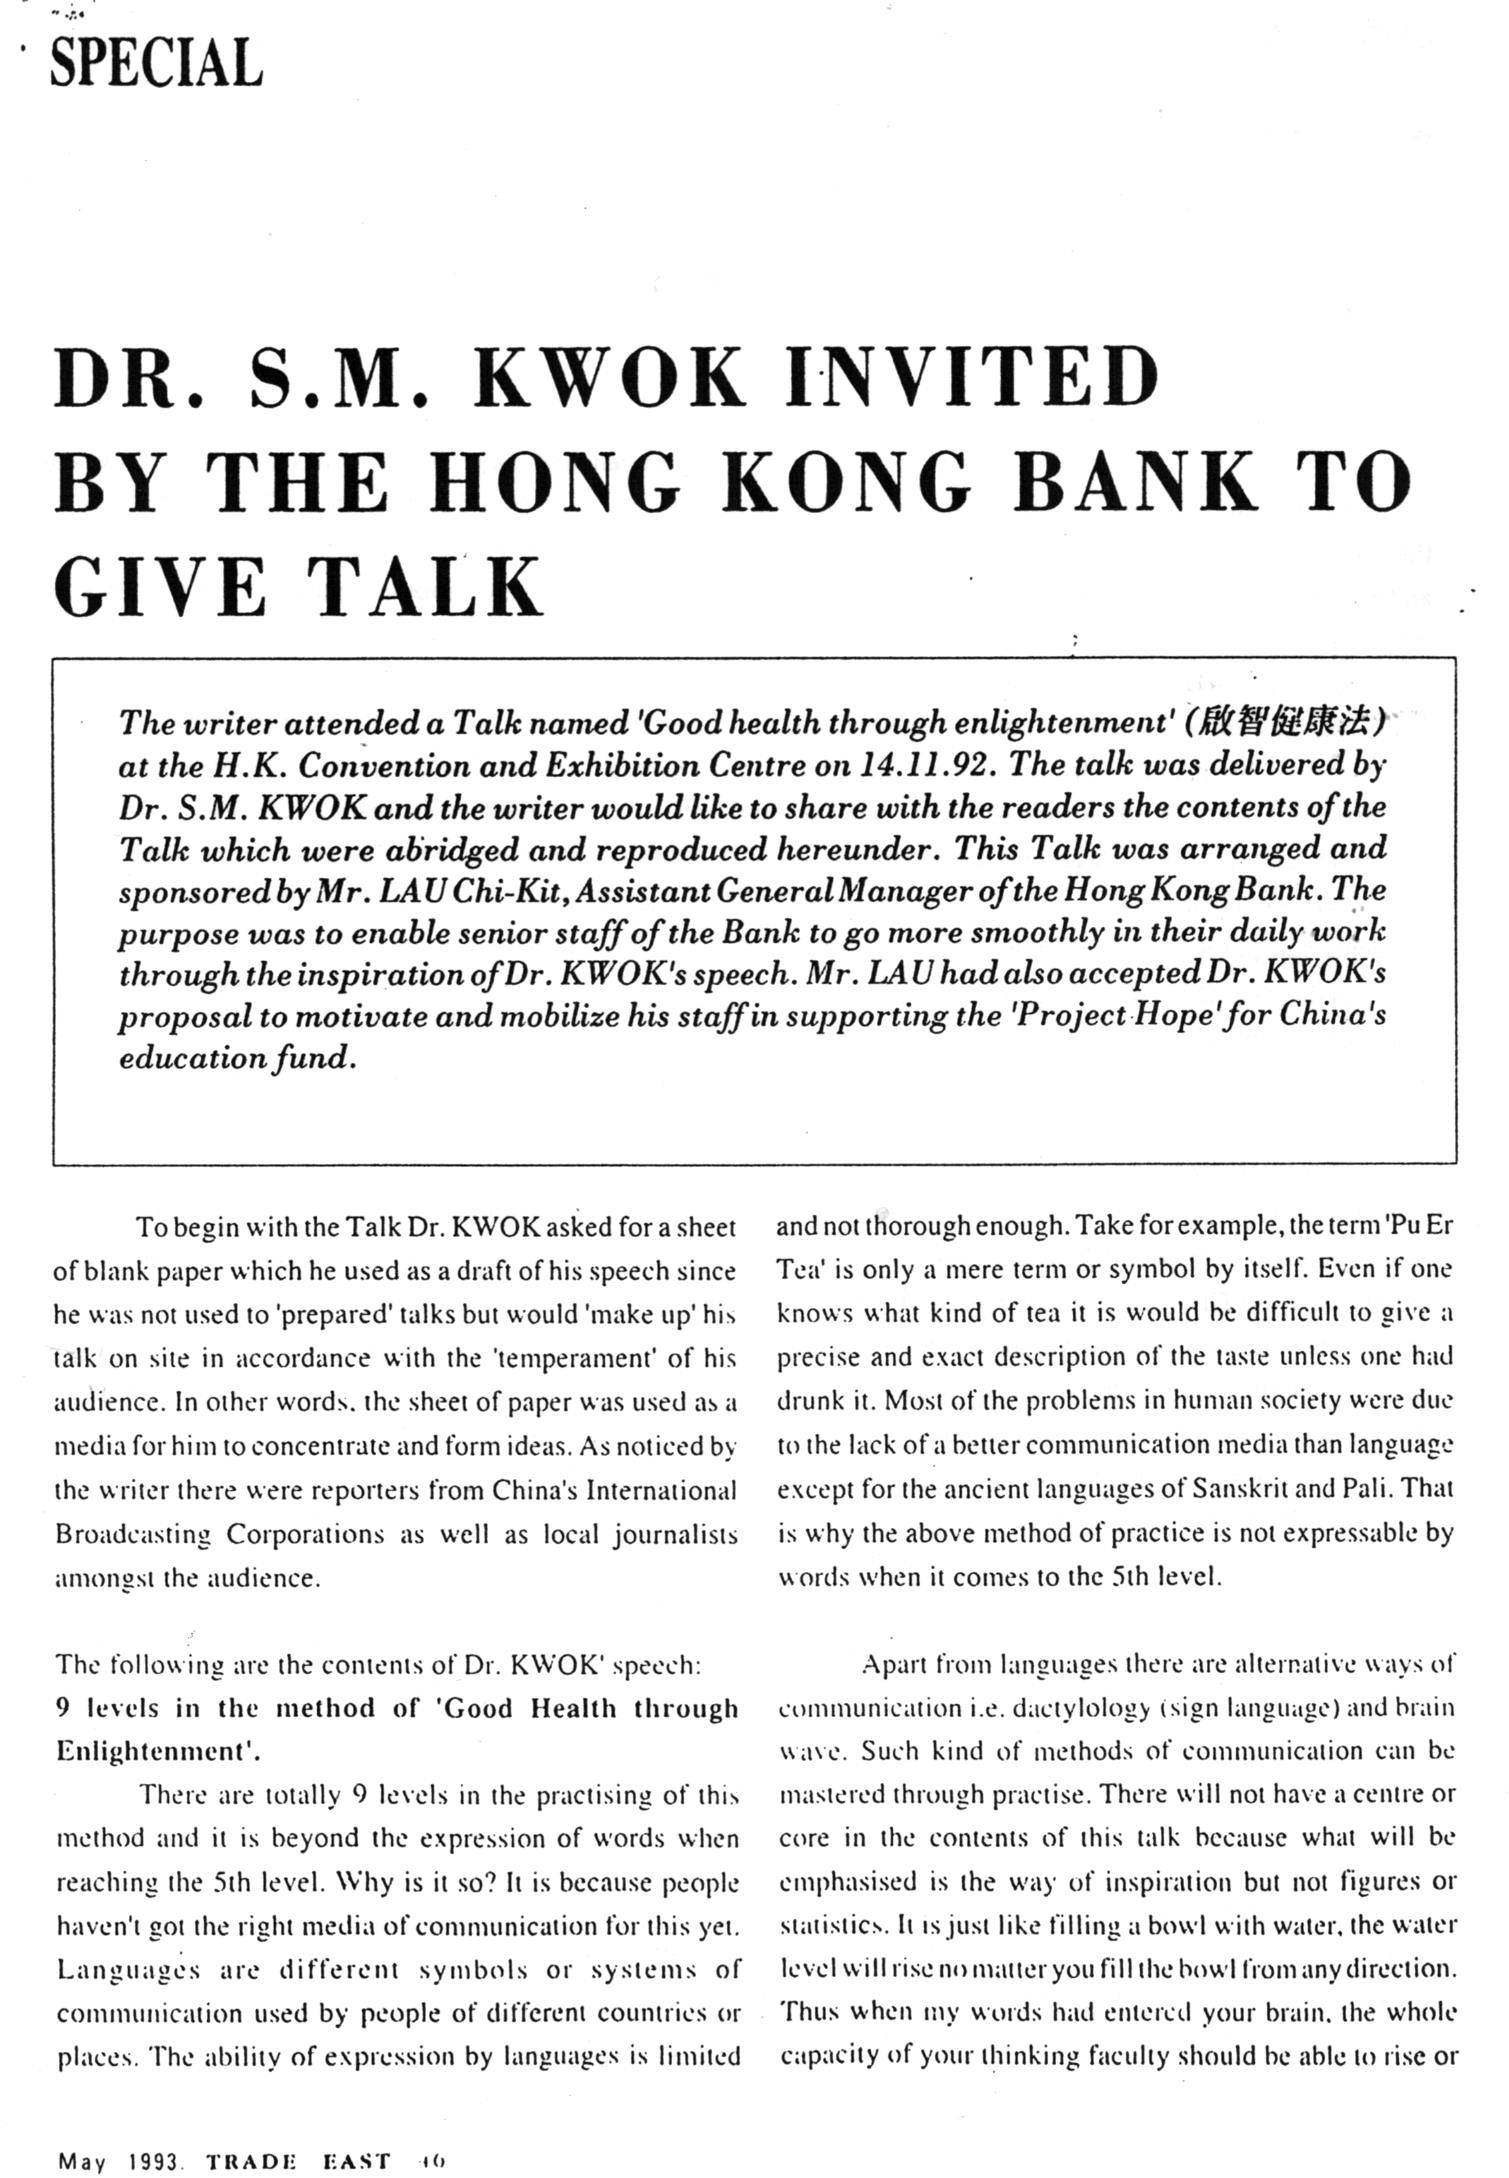 DR S M Kwok Invited by The Hong Kong Bank to give talk.jpg